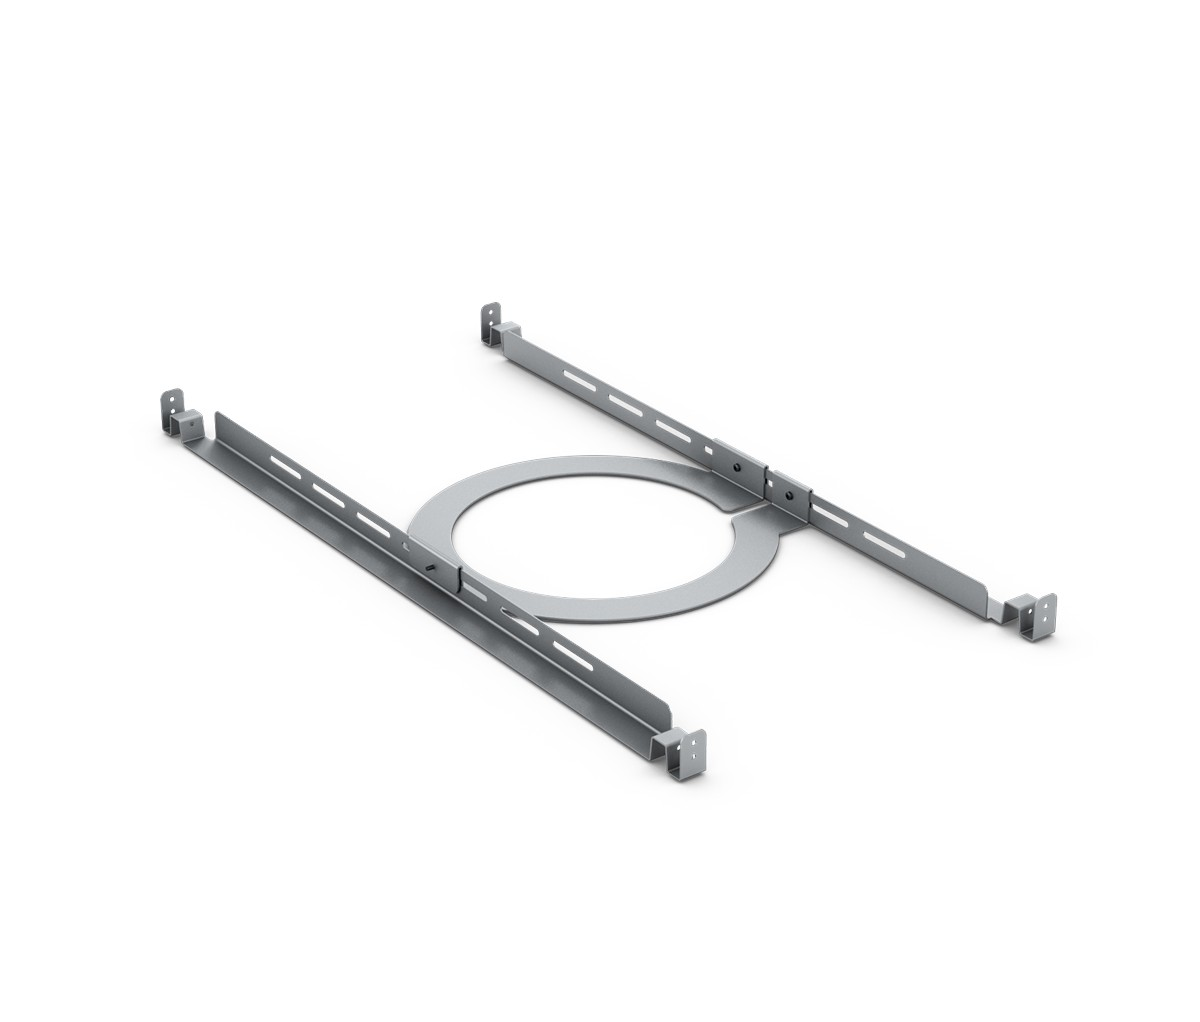 DS 16F adjustable tile bridge (pair)